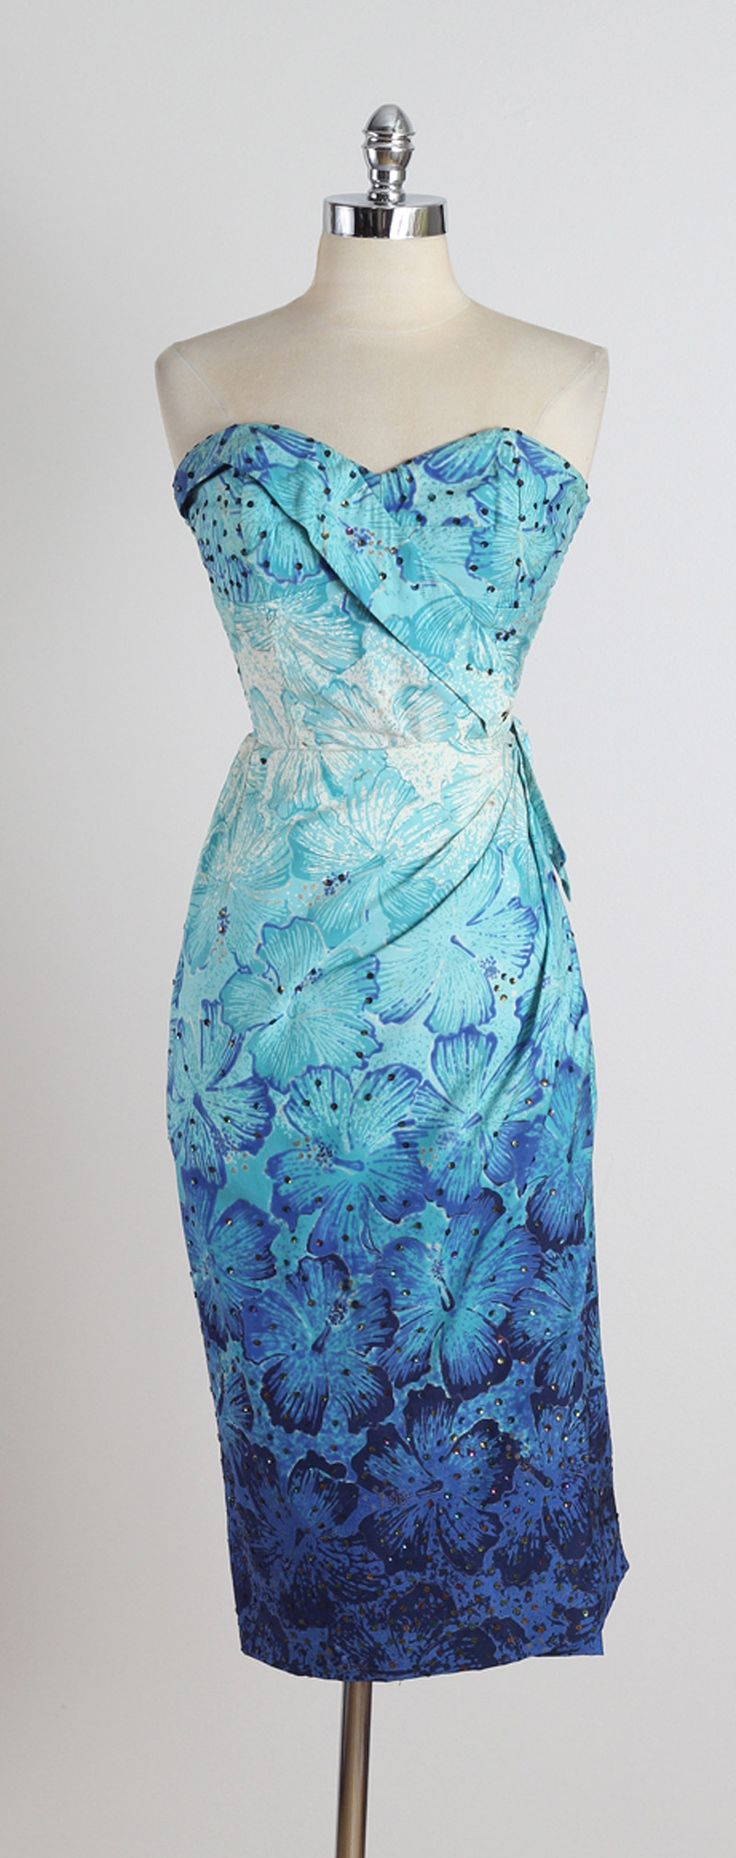 Vintage 1950s Ombre Blue Hawaiian Floral Cotton Sarong Dress